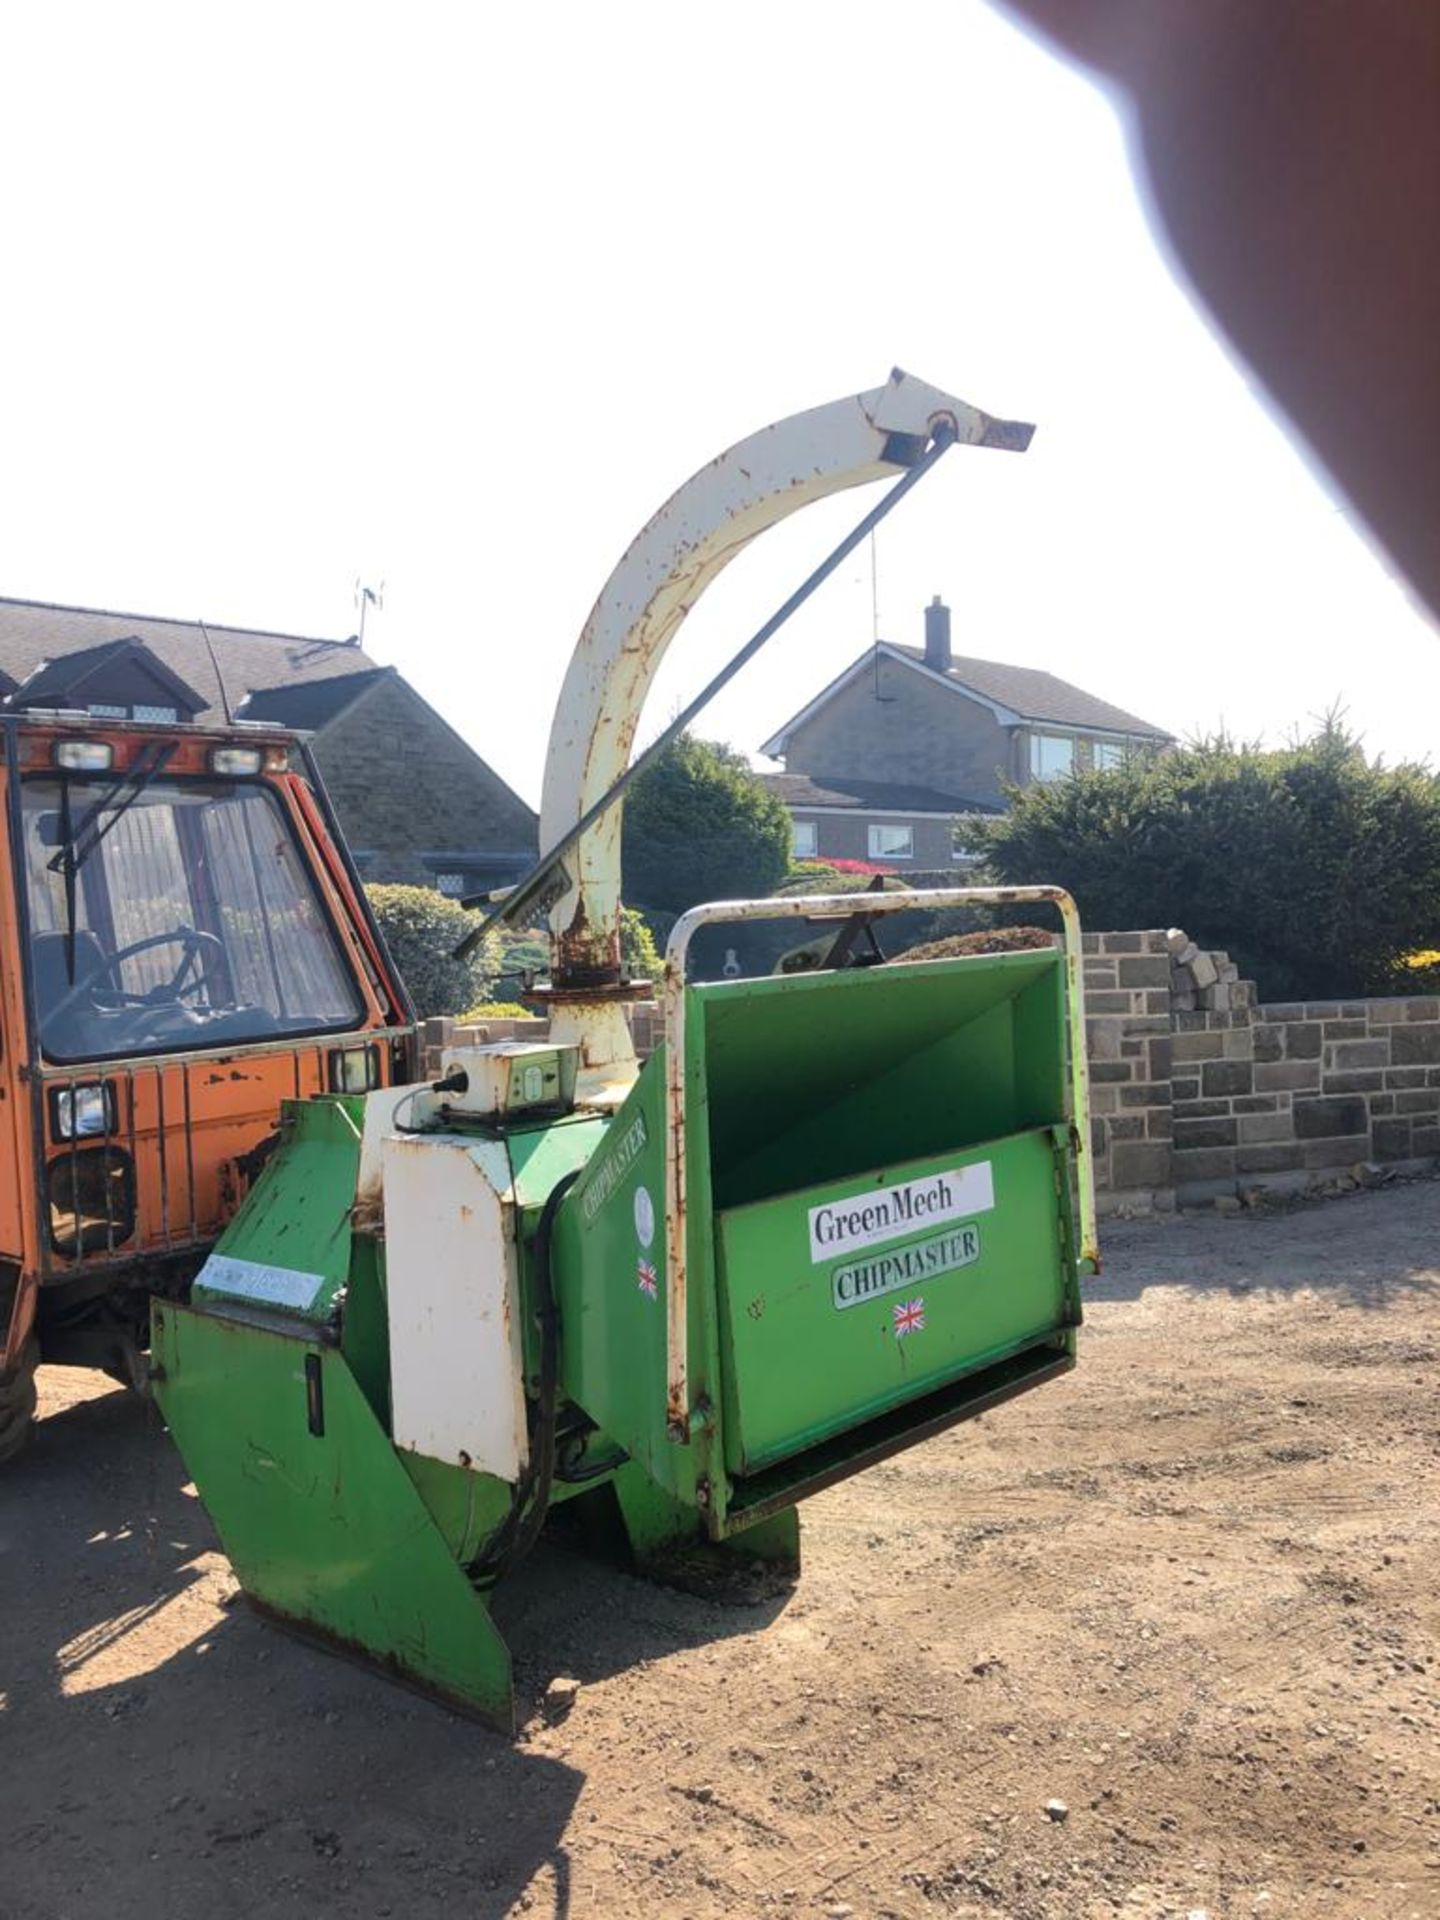 GREENMECH WOOD CHIPPER, 3 POINT LINKAGE, WORKS AND CUTS *PLUS VAT* - Image 5 of 8